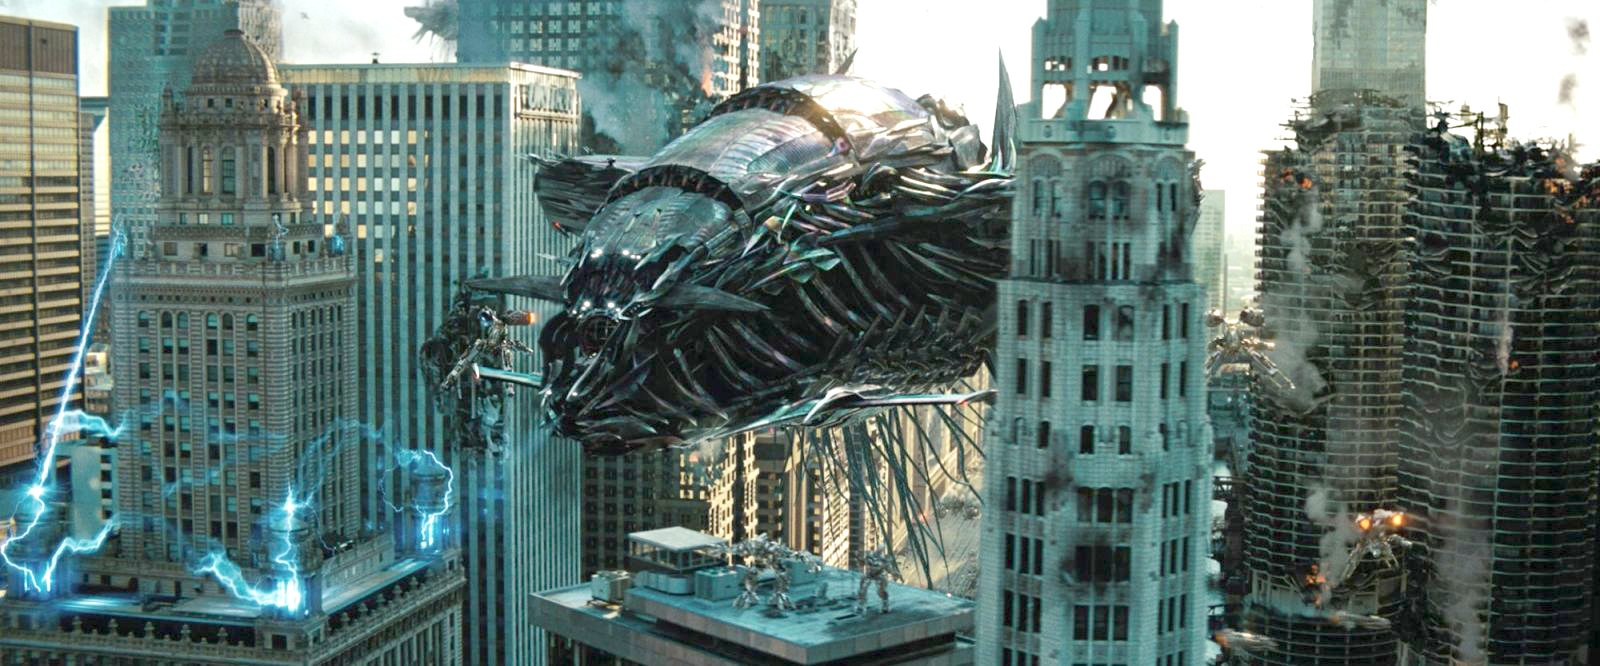 The Driller loose in the streets of Chicago in Transformers: Dark of the Moon (2011)